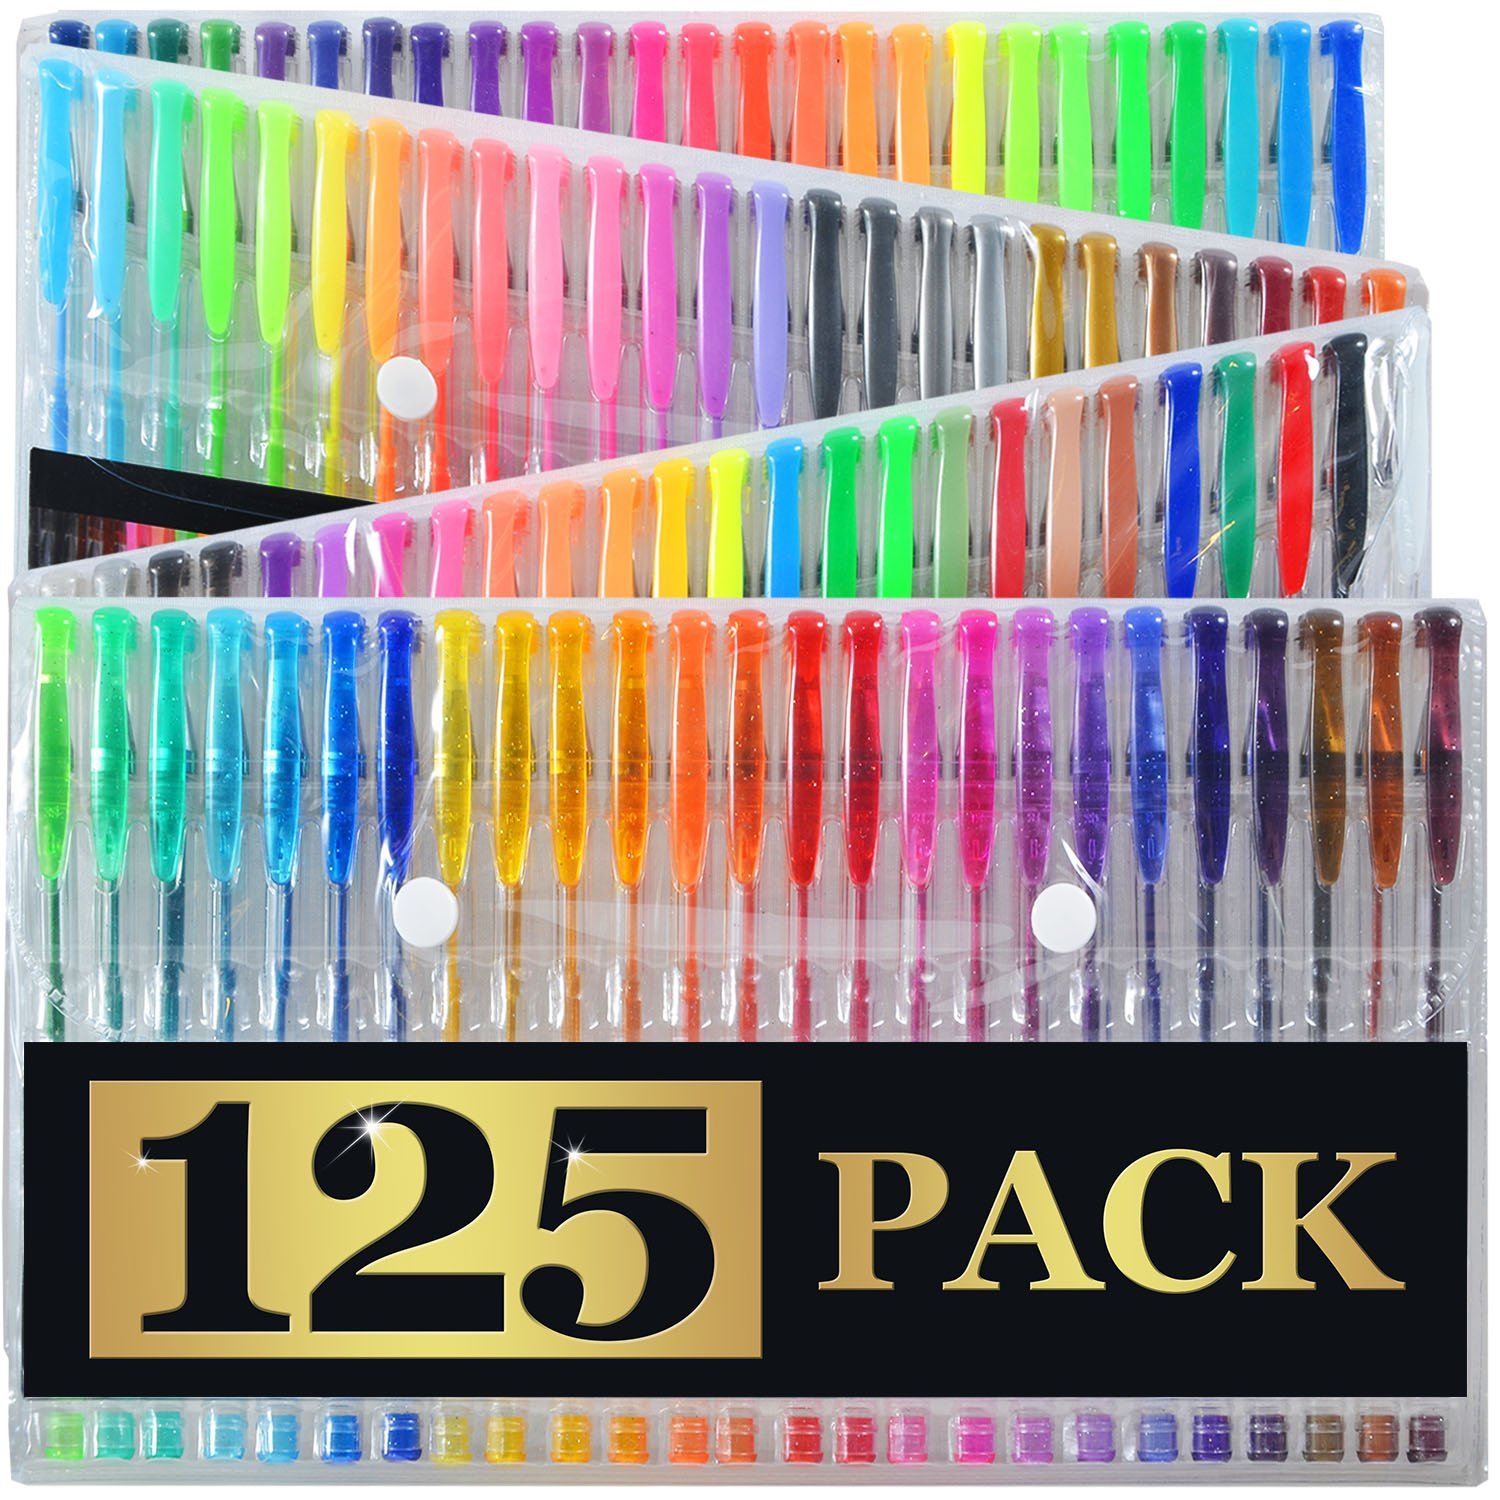 Amazon.com : Artist\'s Choice Gel Pens Set with Case Pack of 125 ...